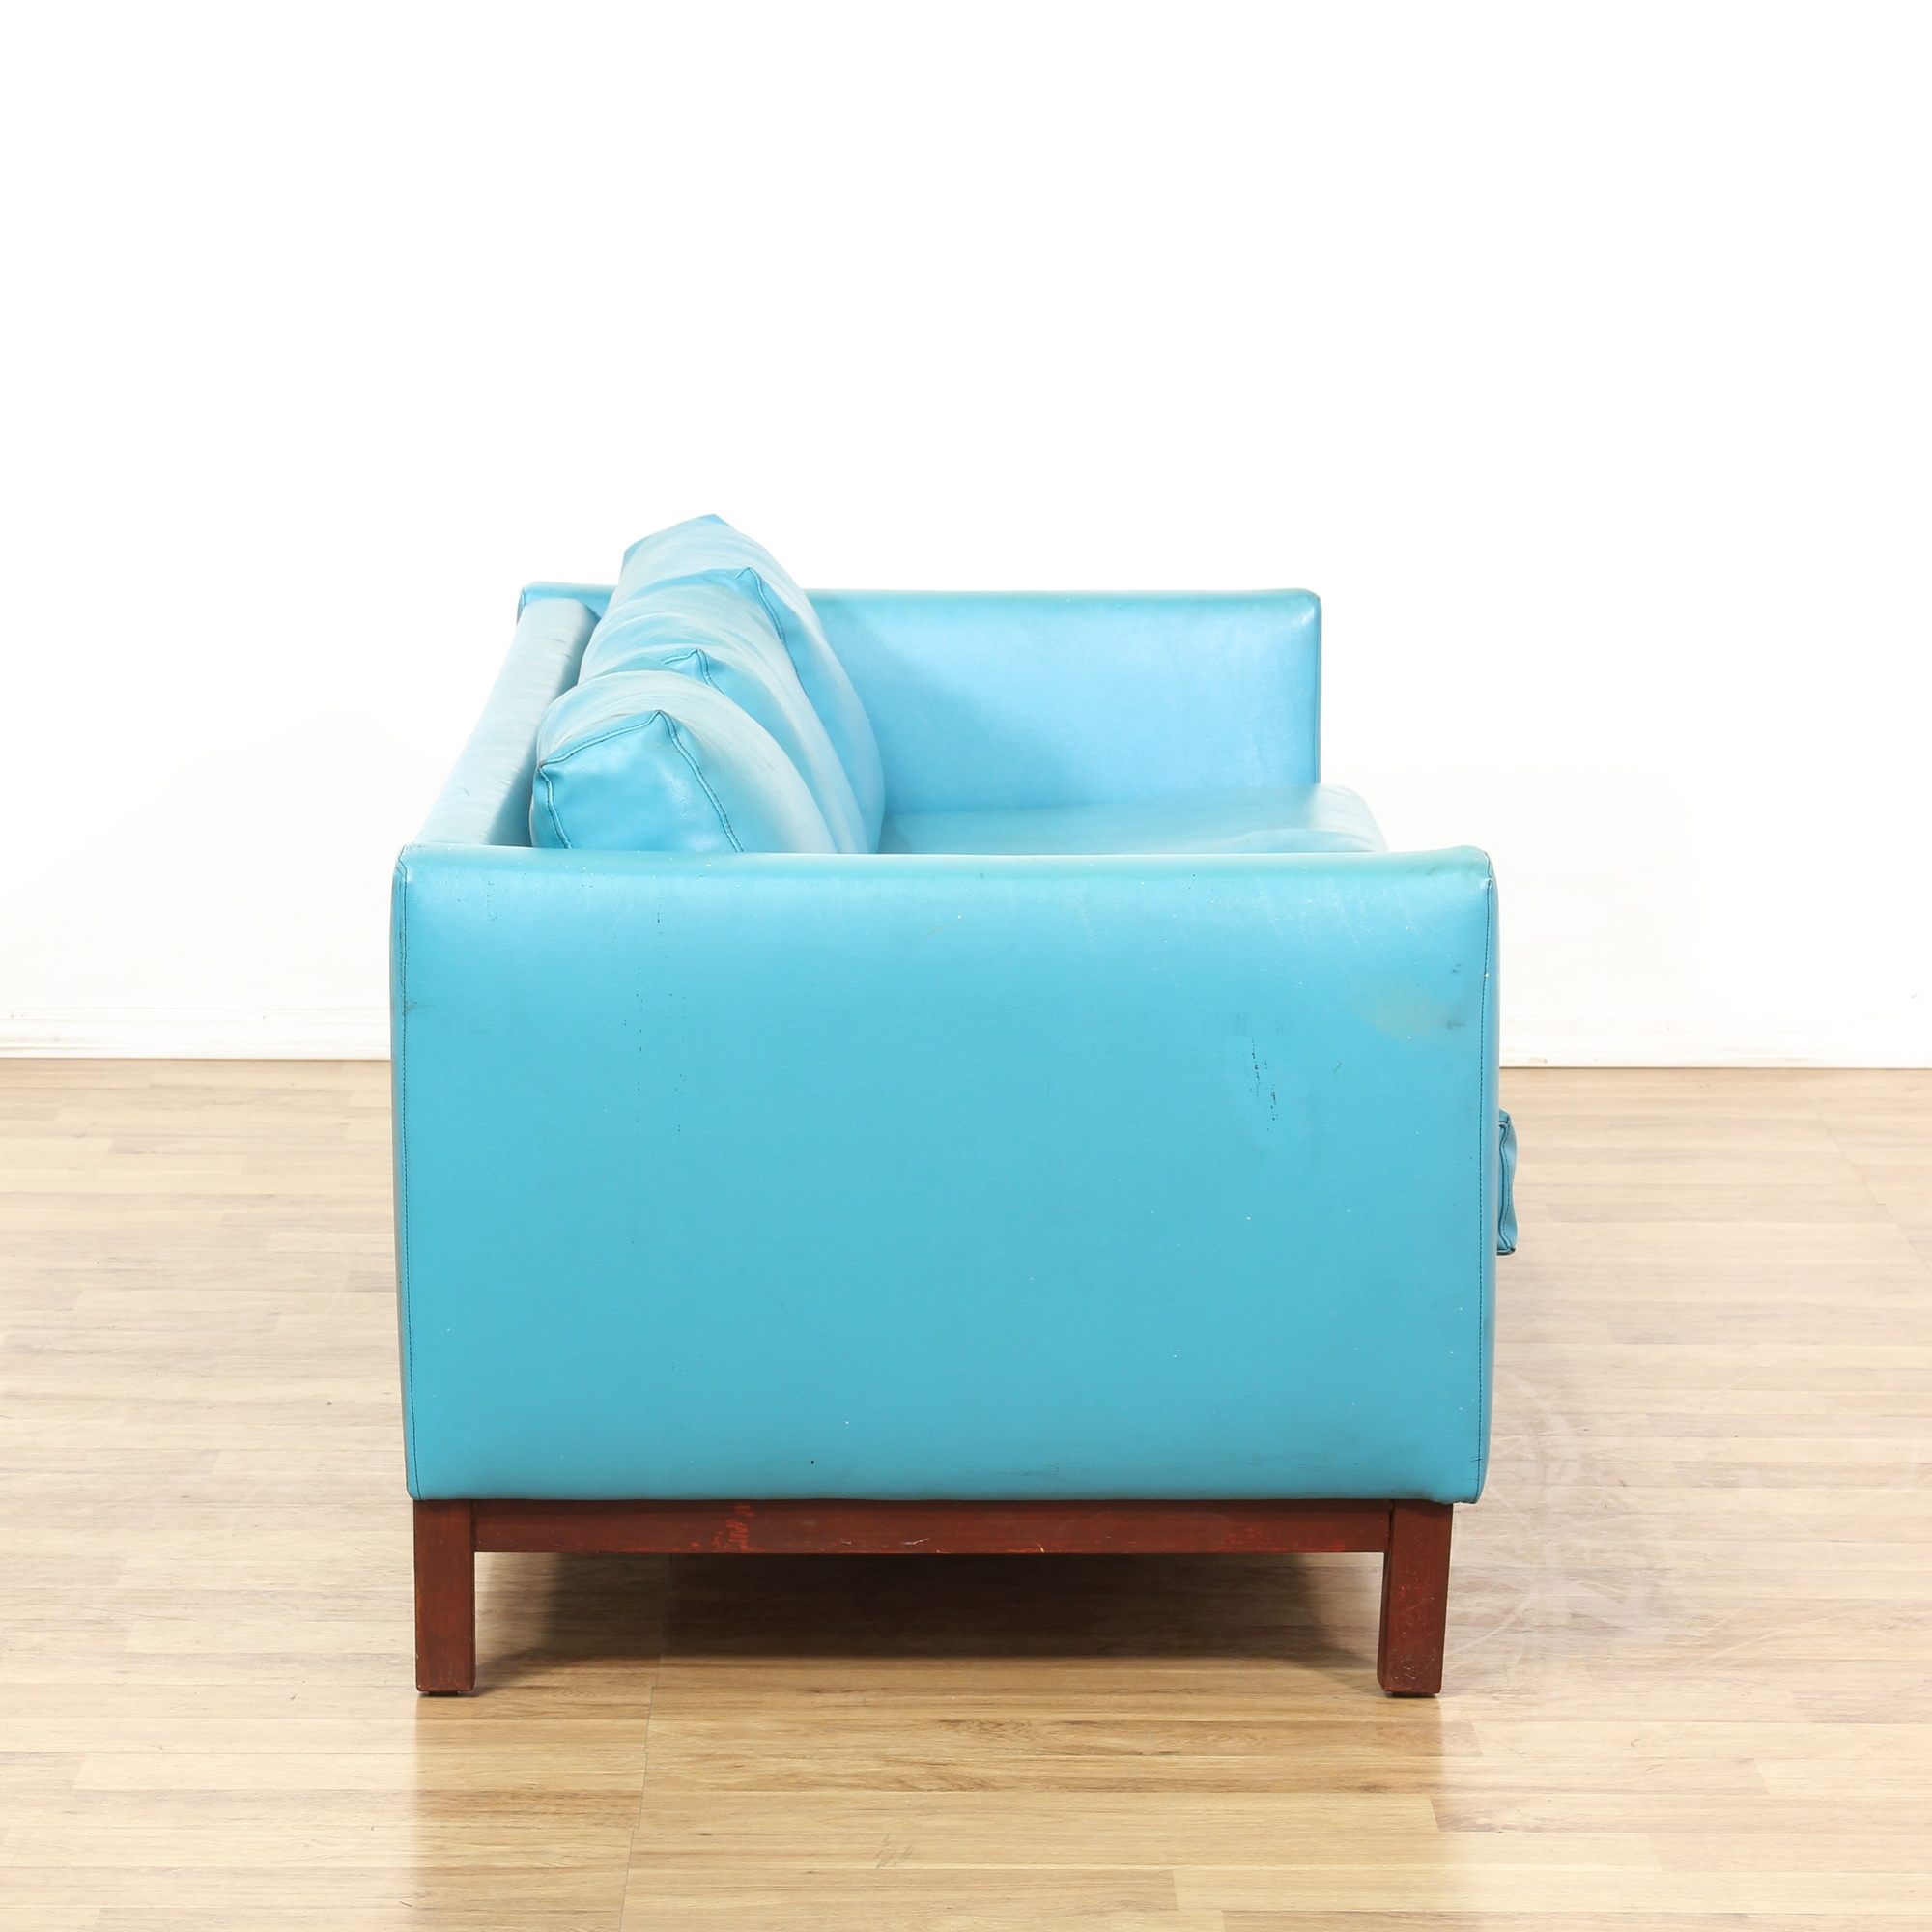 Mid Century Modern Furniture San Diego Mid Century Modern Blue Vinyl Sofa  Chair Loveseat Vintage Furniture. 15  images  mid century modern furniture san diego    wooden bed